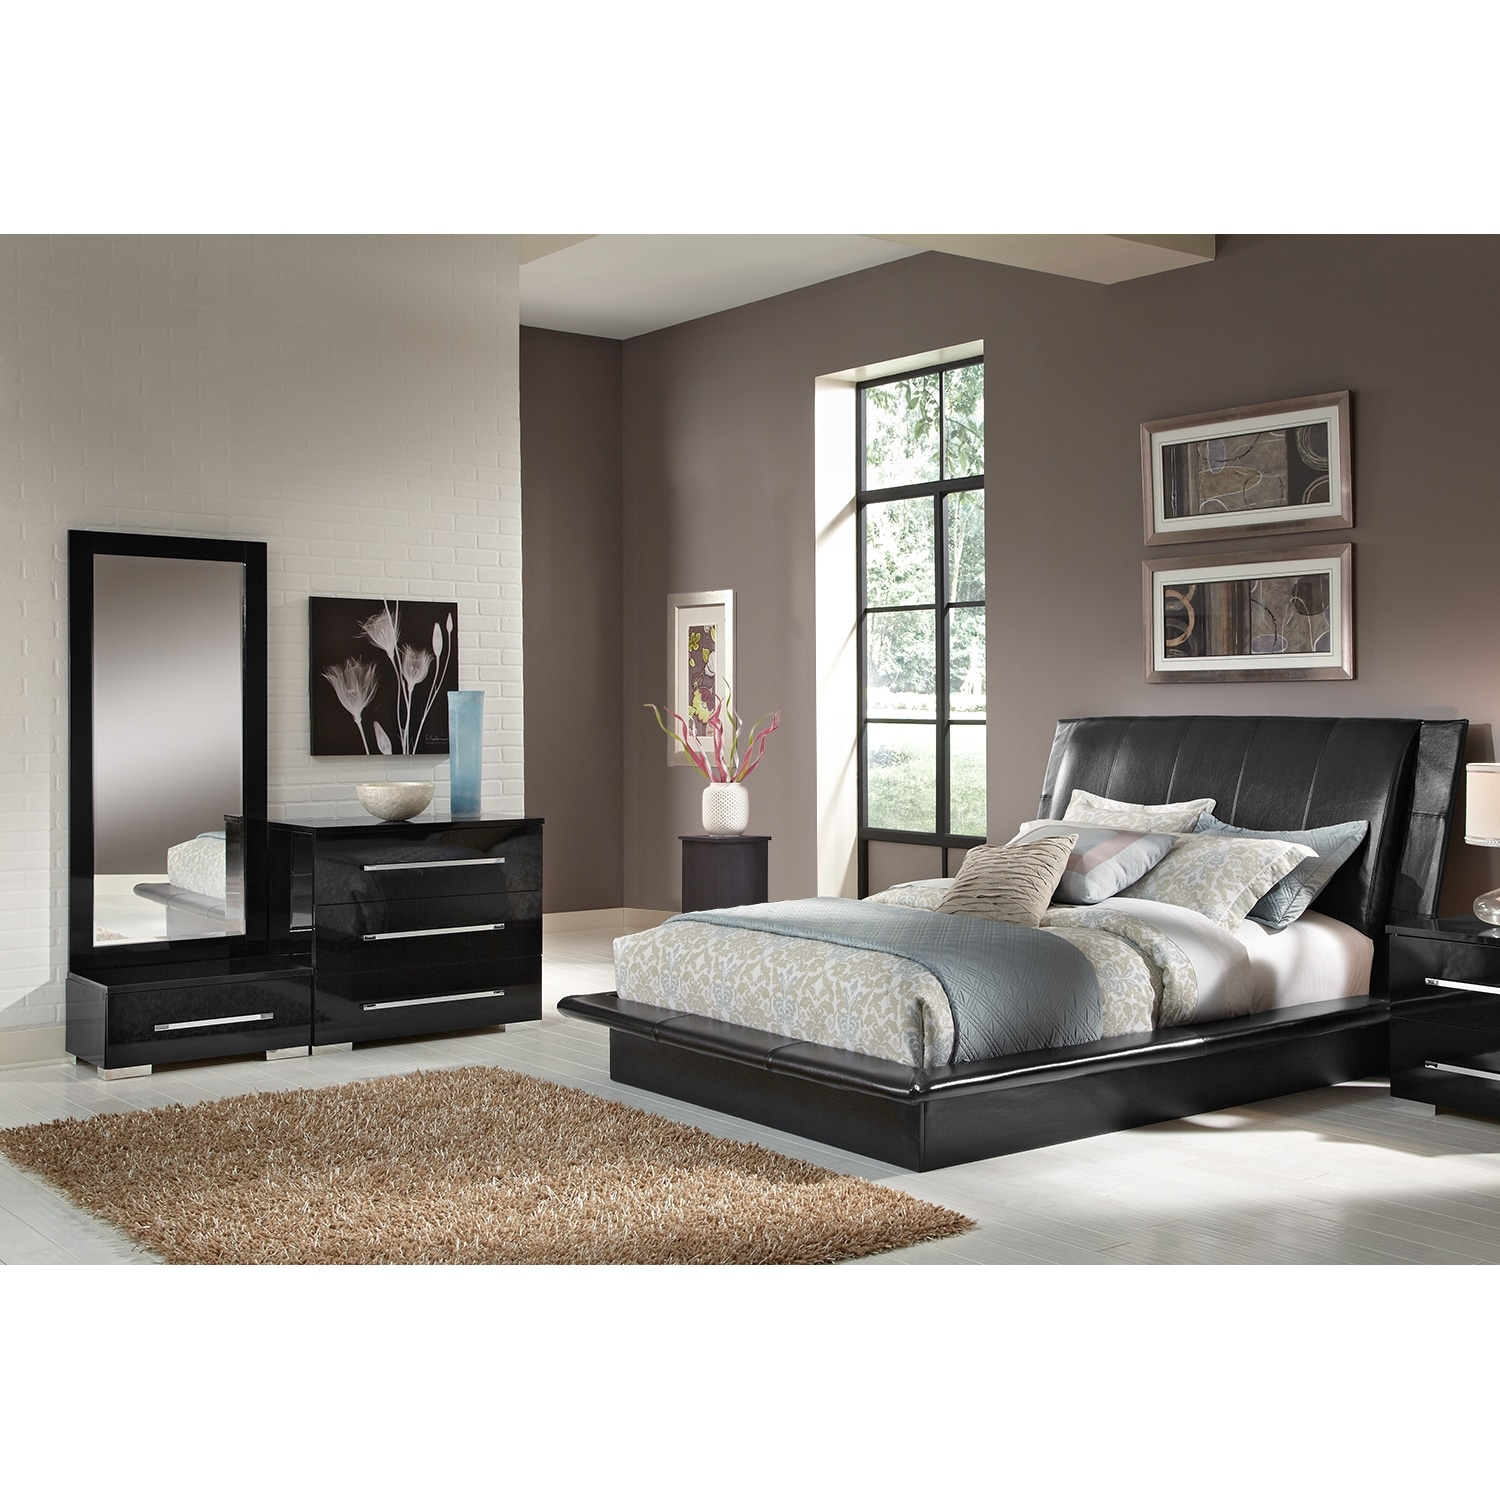 Dimora 5-Piece King Upholstered Bedroom Set - Black